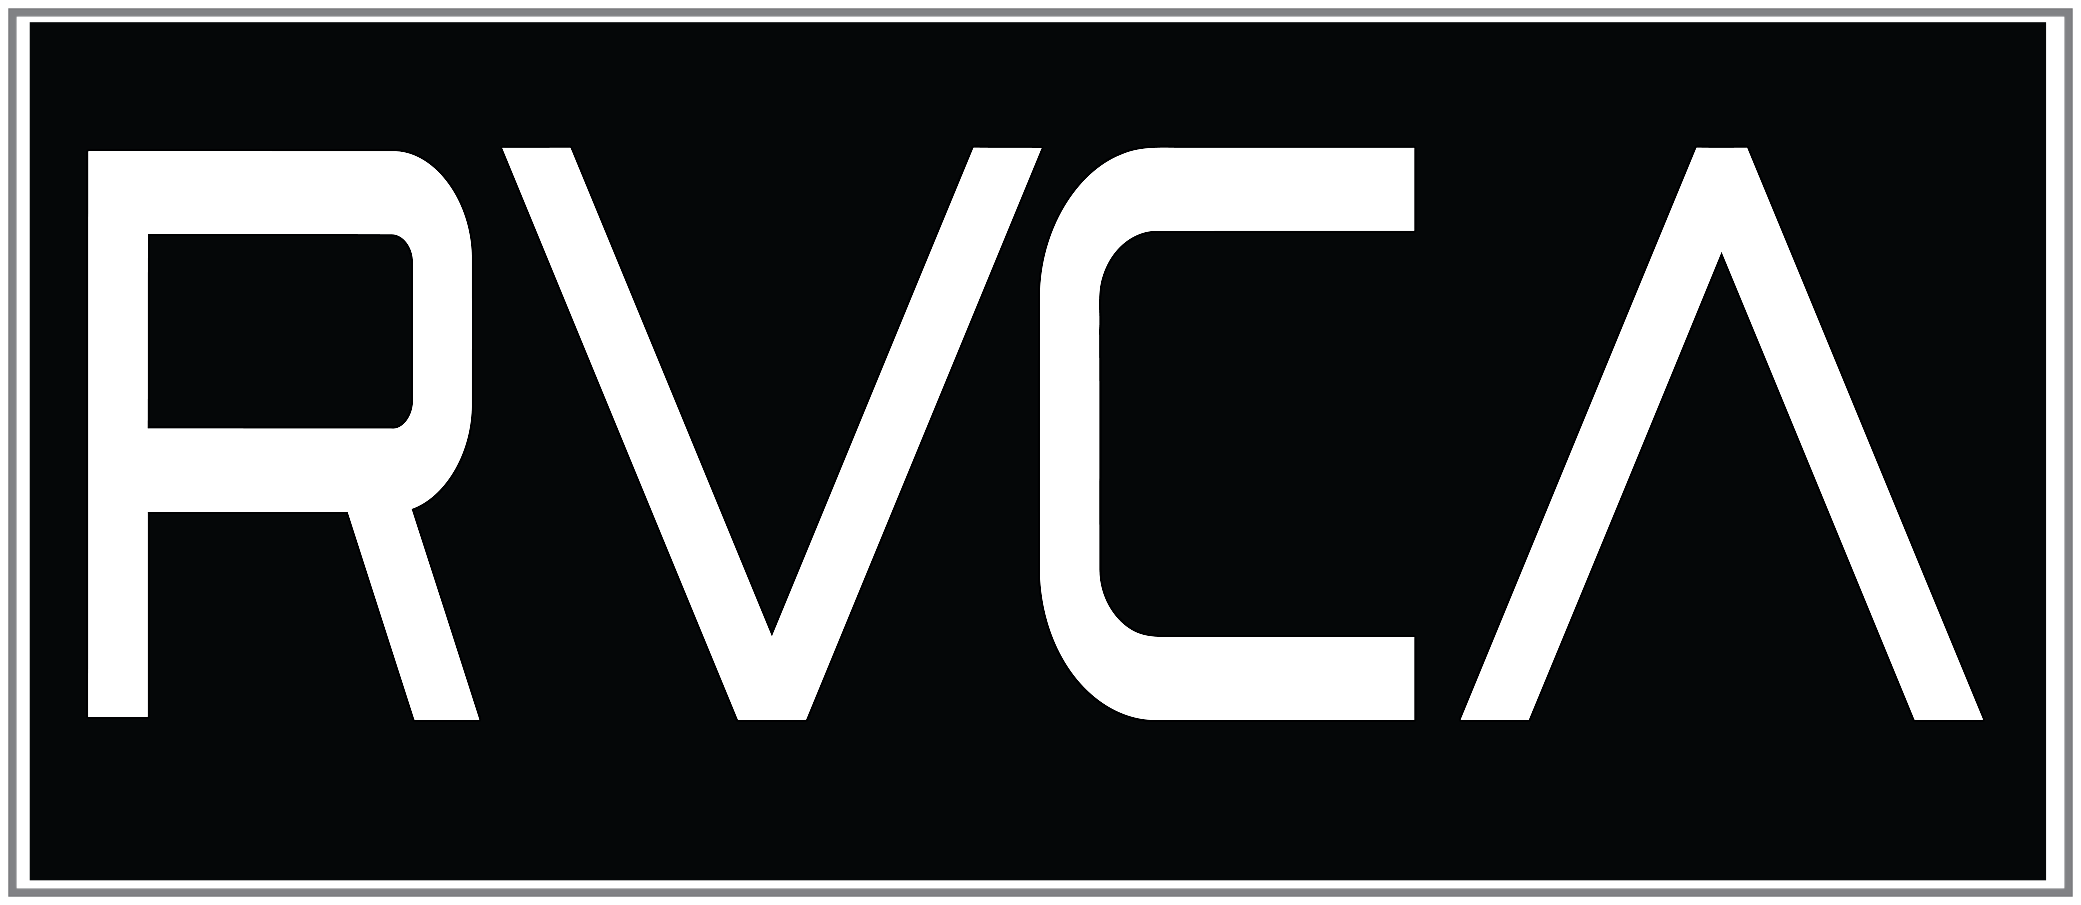 RVCA BOARD SWAP ISLAND WATER SPORTS SAMPLE SALE DEERFIELD BEACH SOUTH FLORIDA BOCARATON